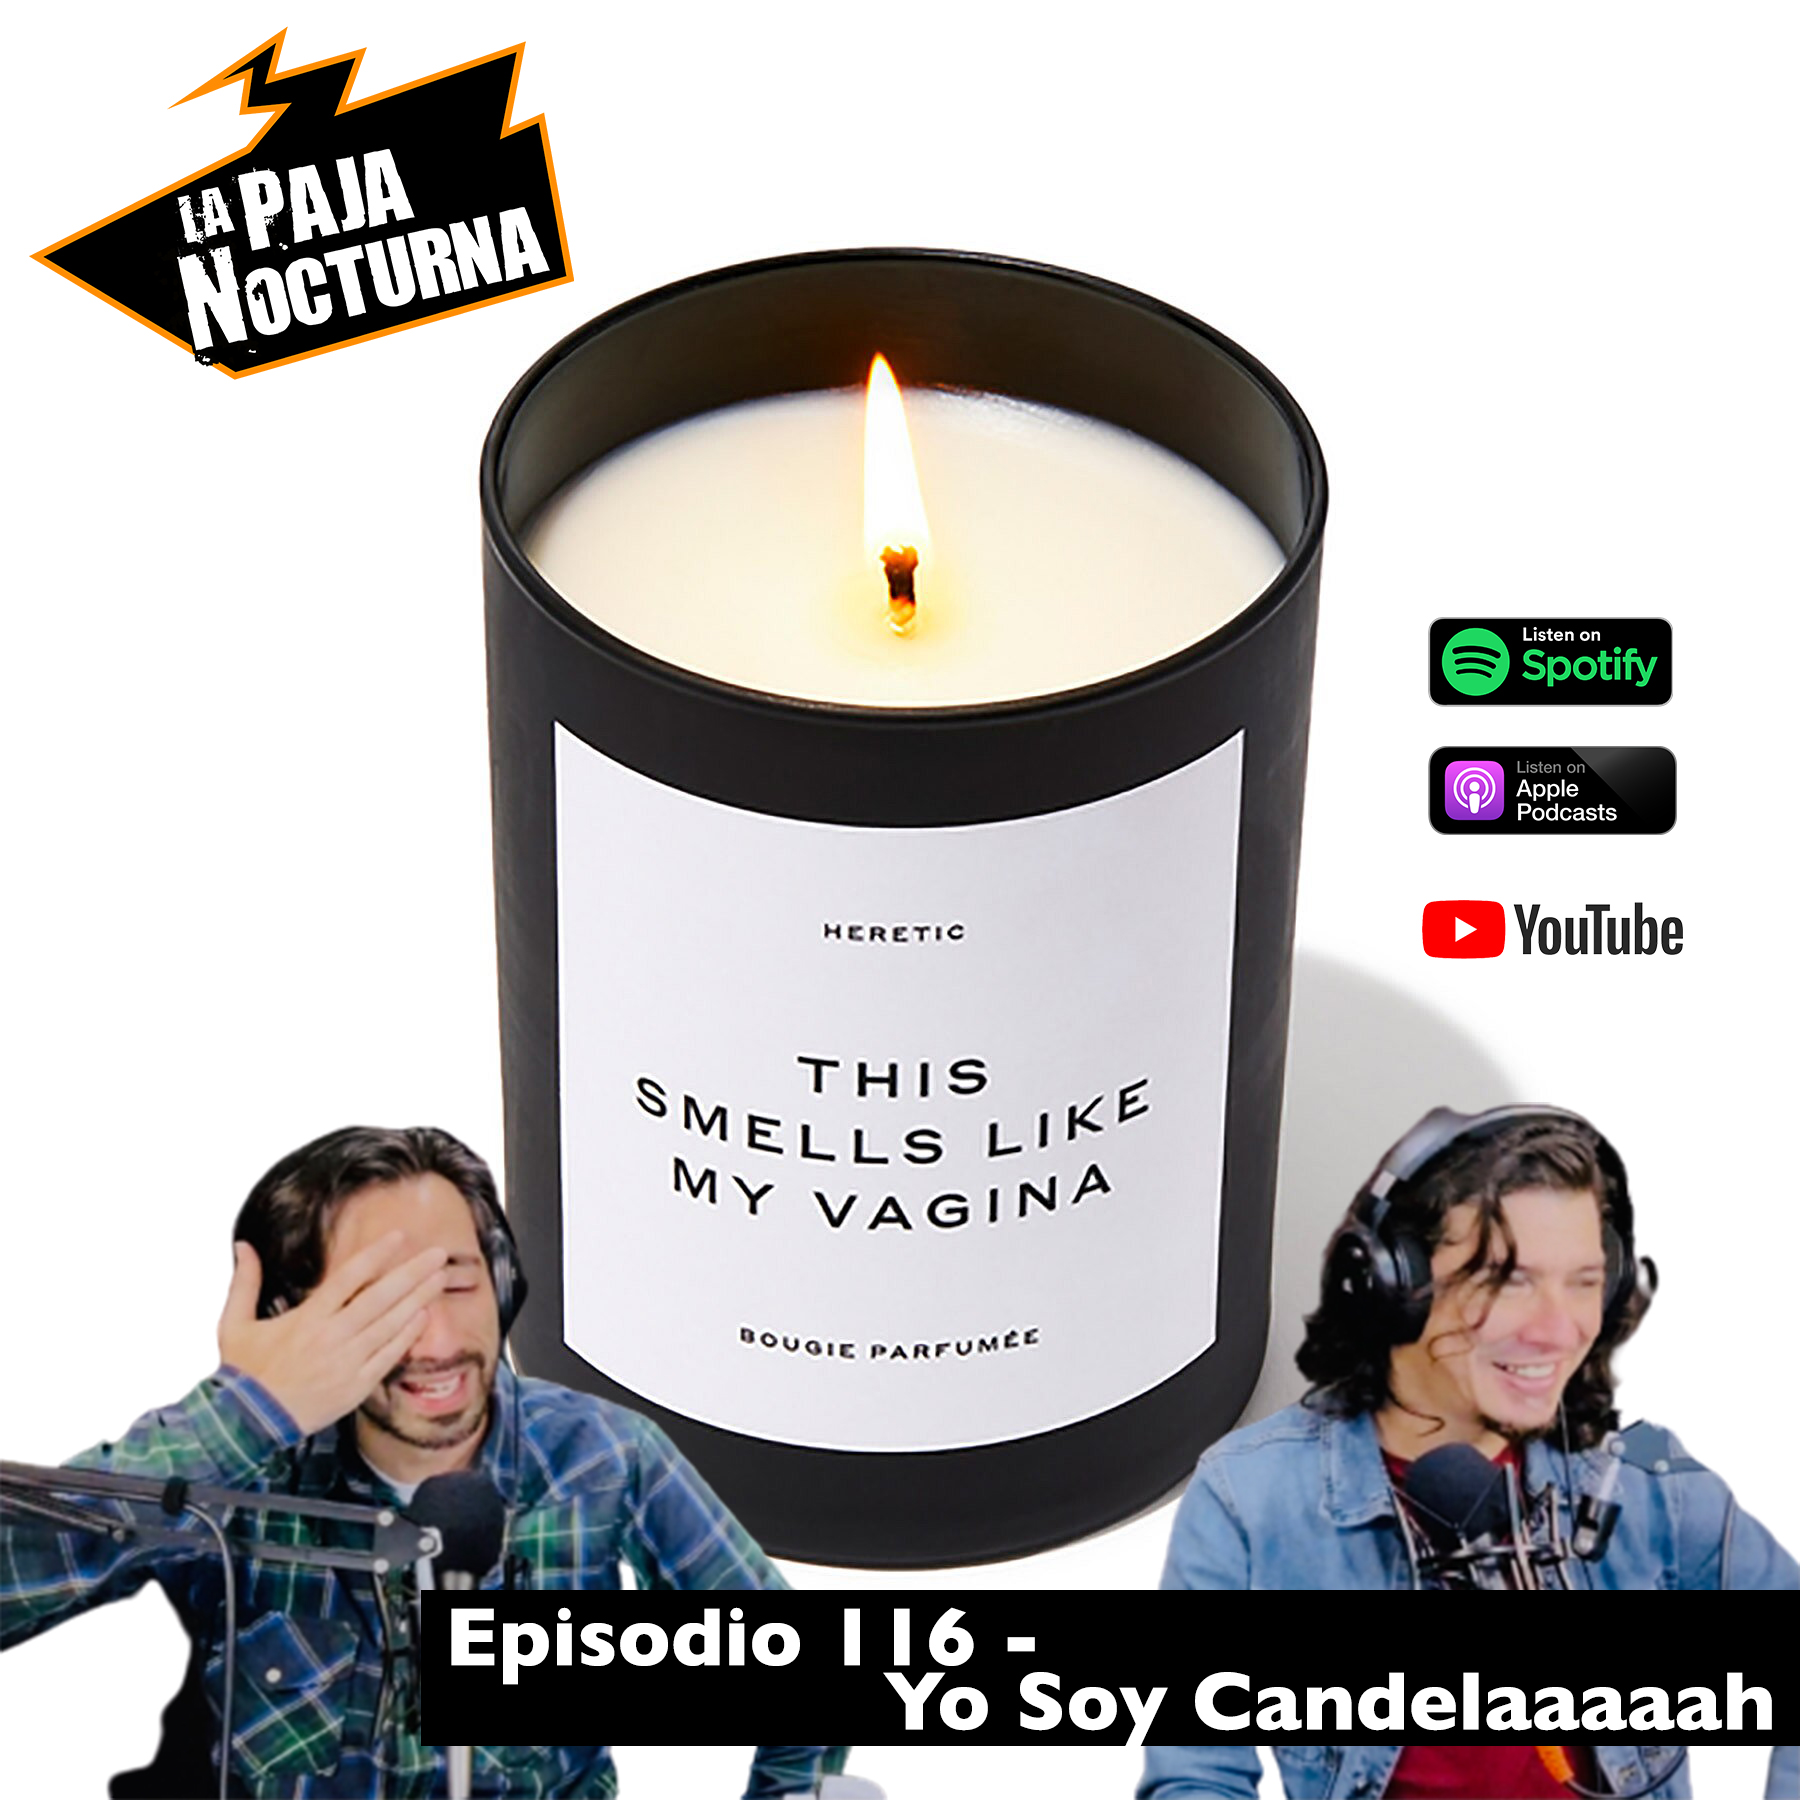 La paja nocturna podcast Episodio 116